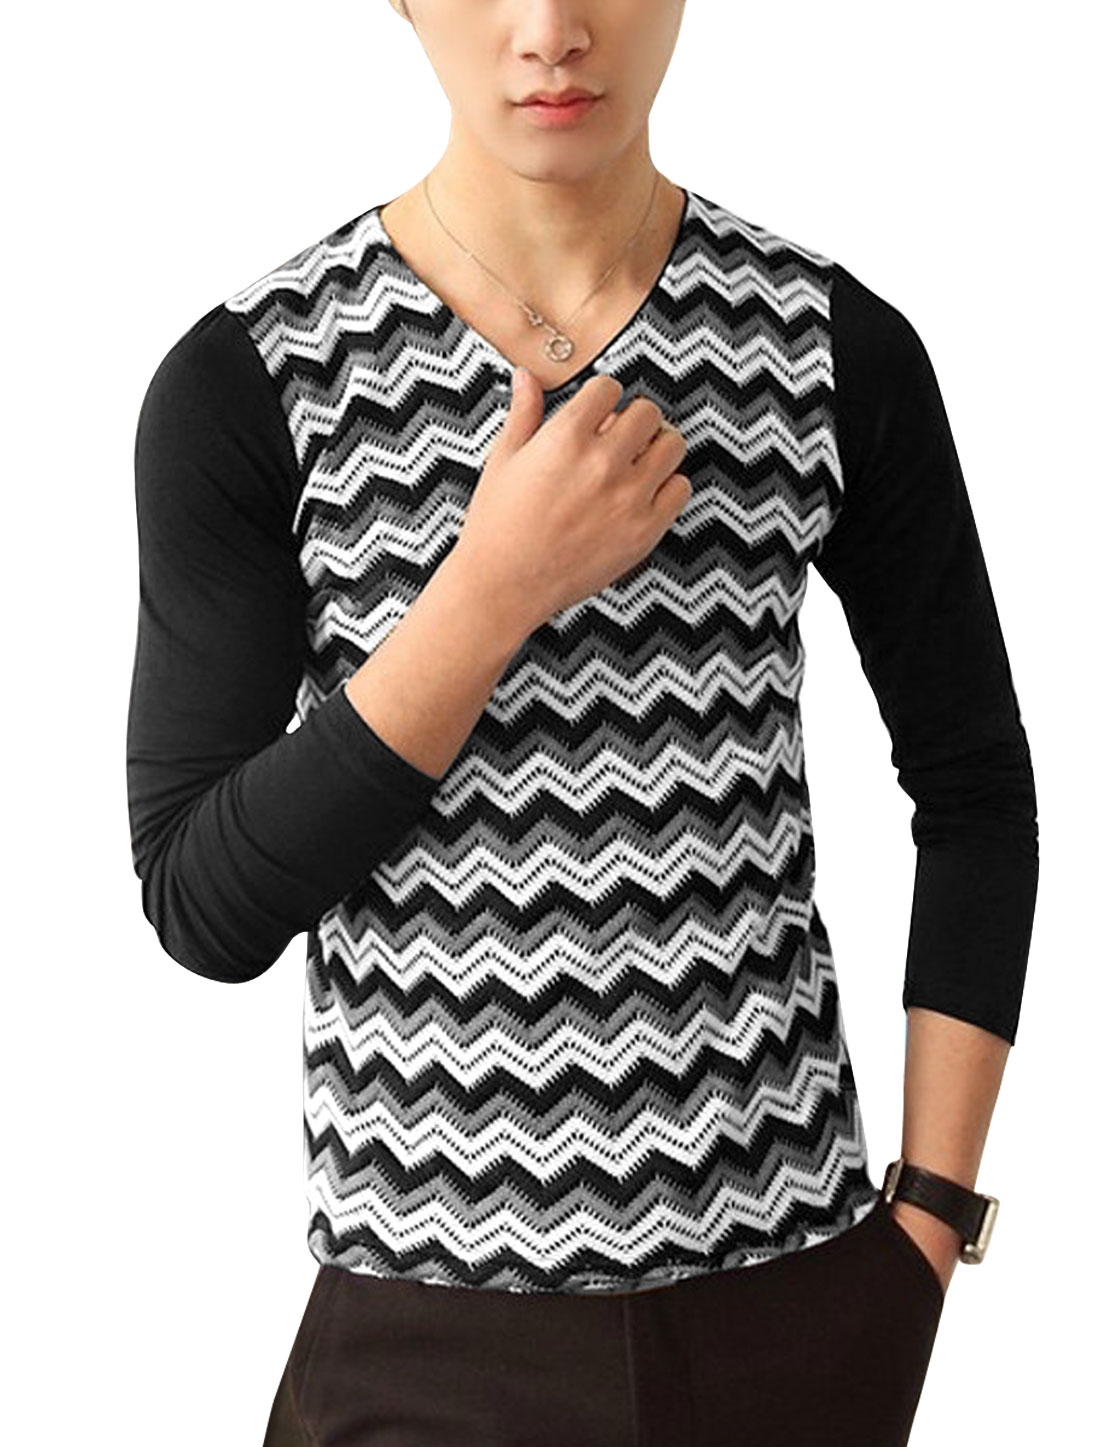 Men Spliced Design Zigzag Contrast Color Casual Shirt Black S